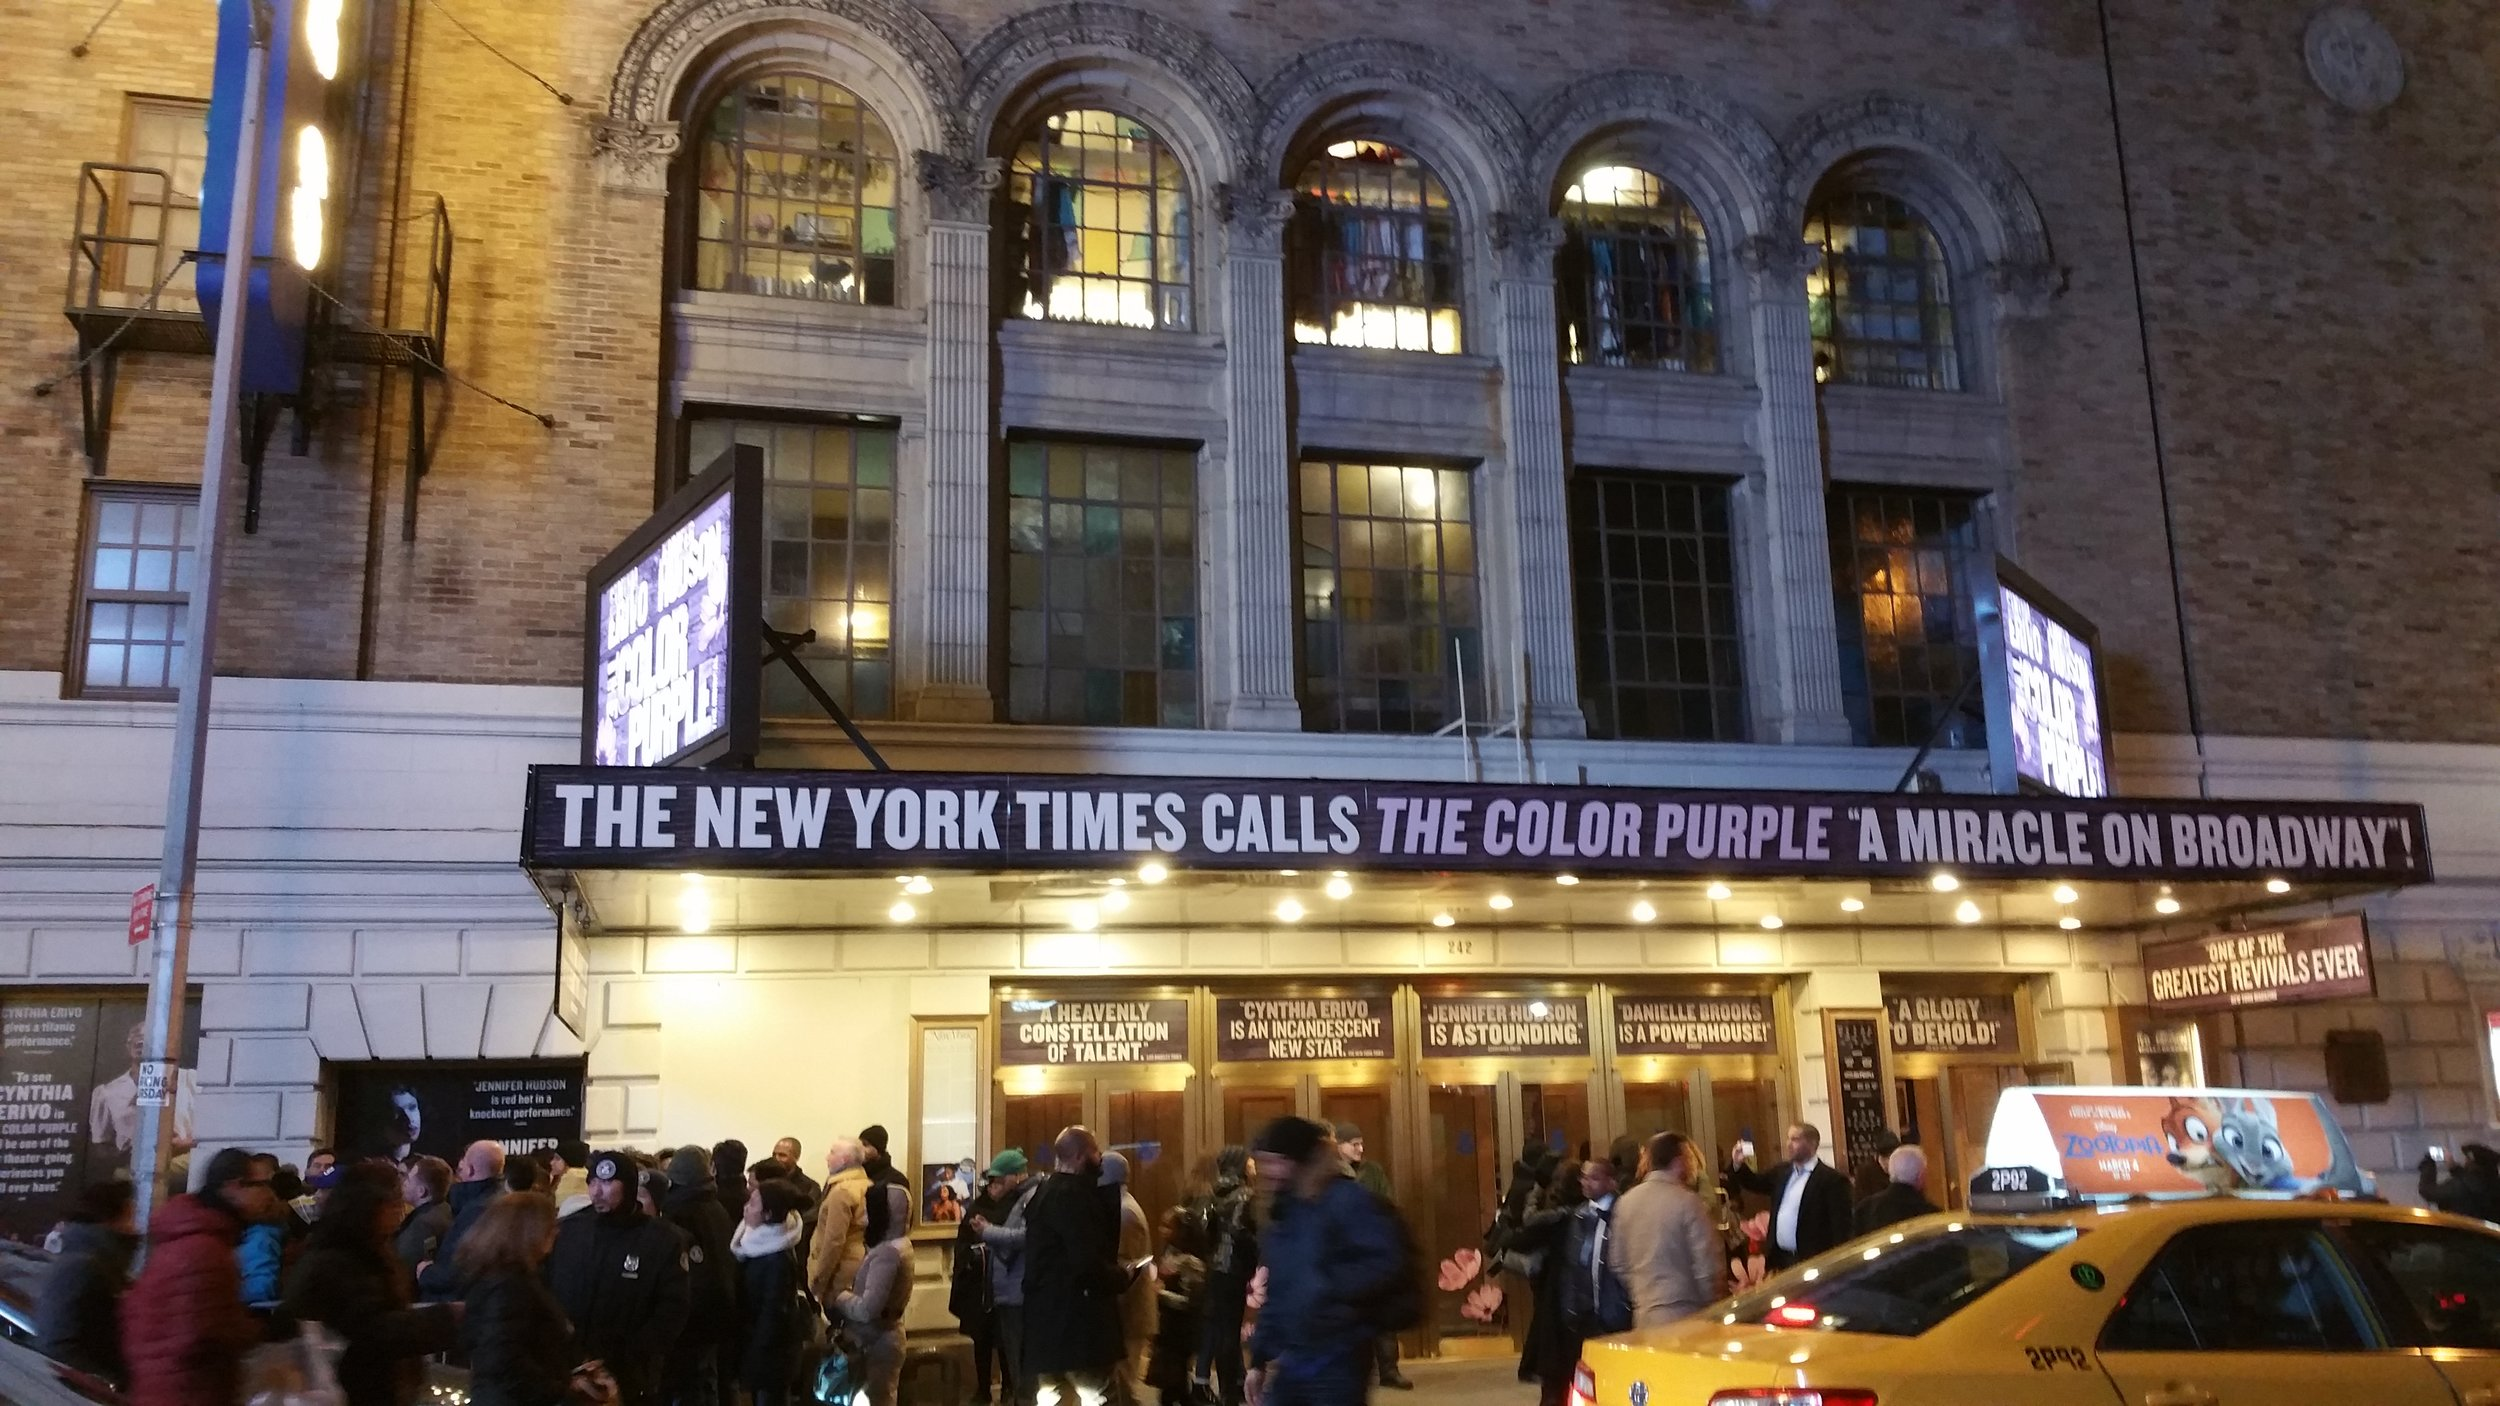 Outside of the theater for the Color Purple…